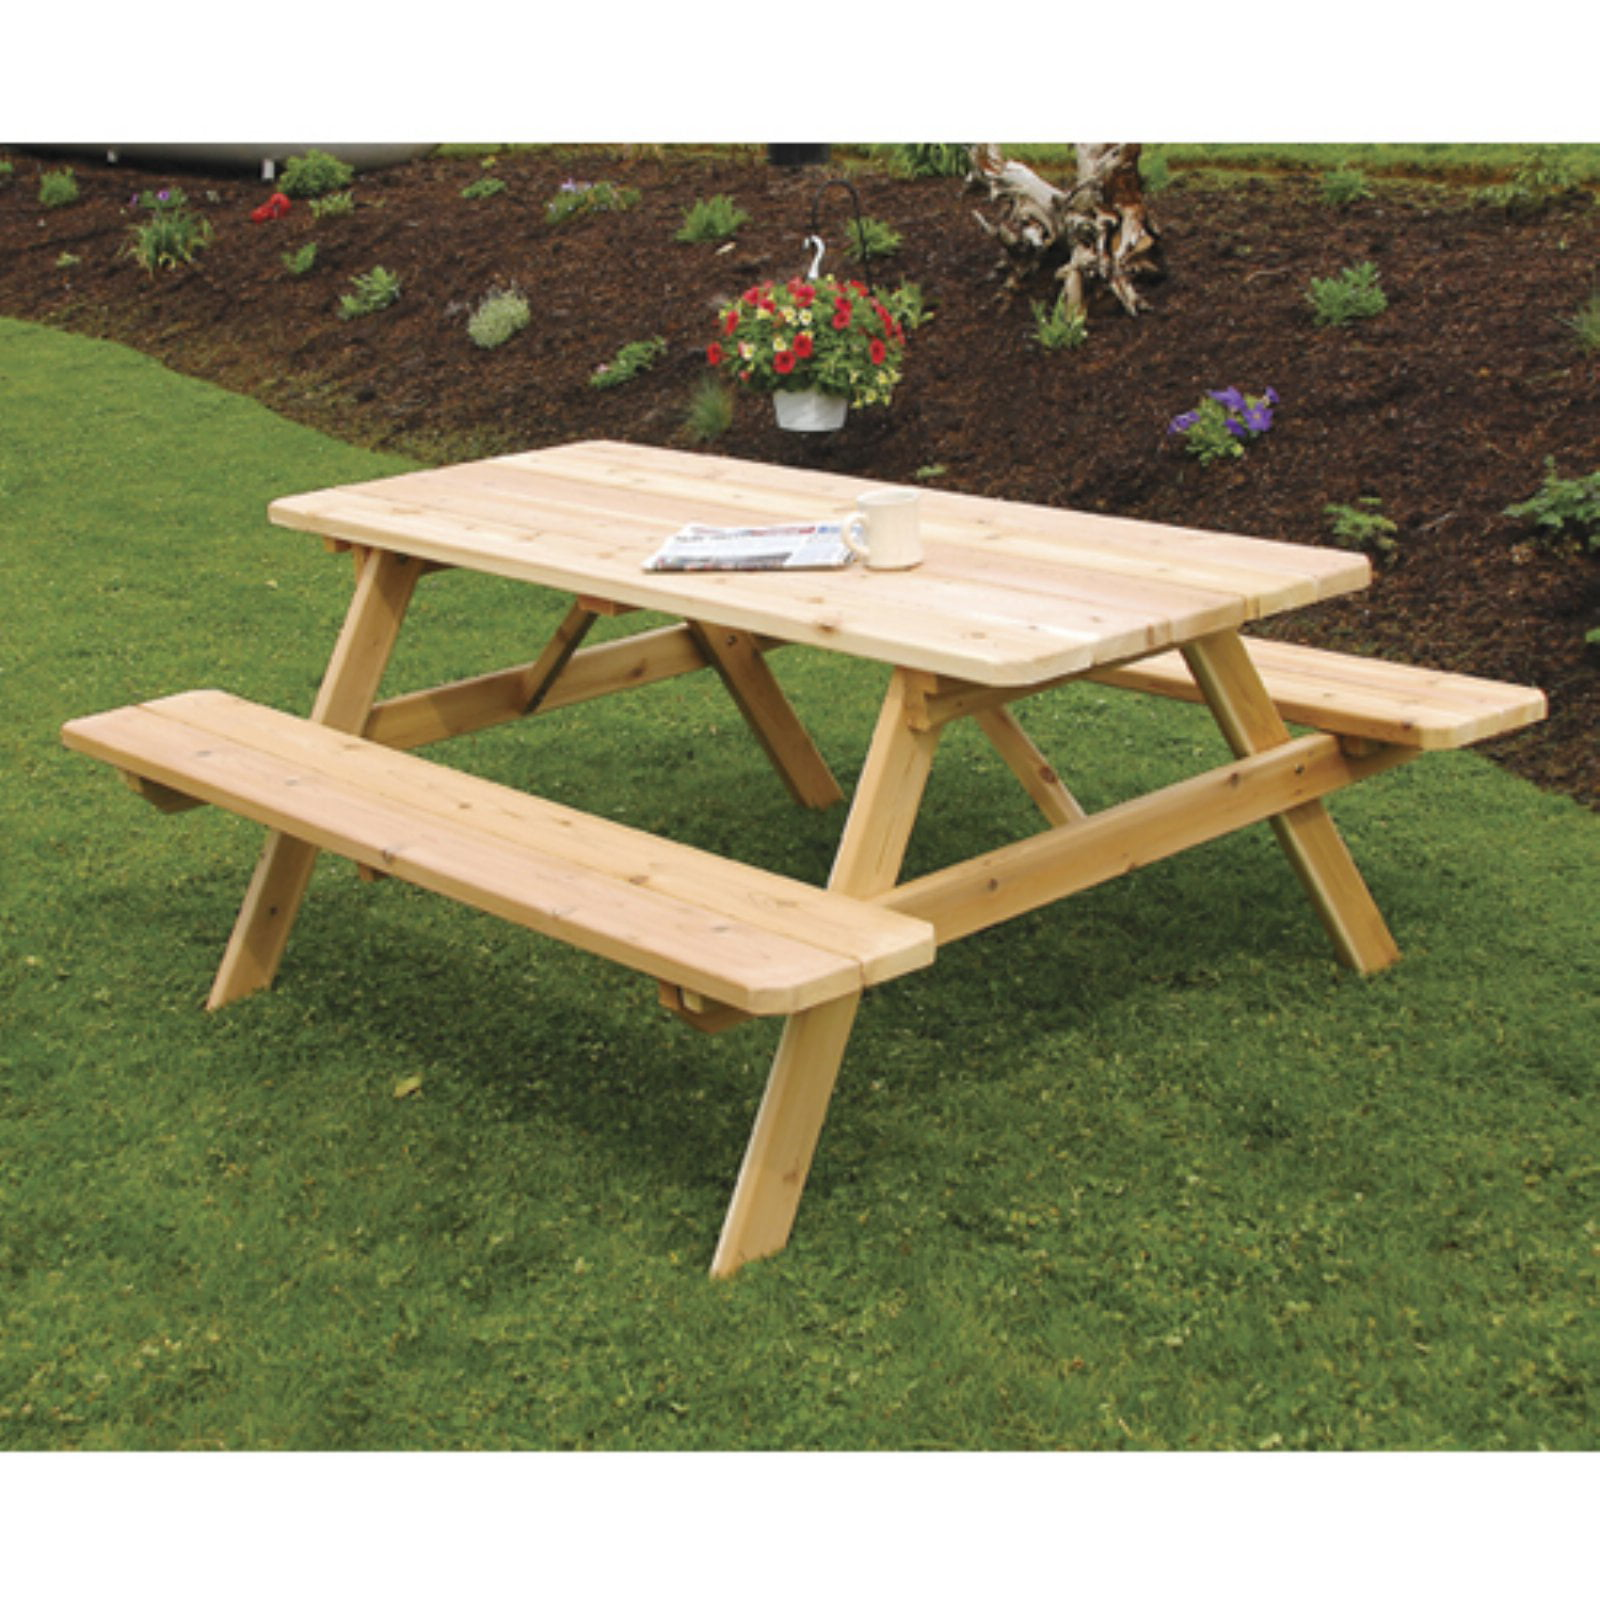 A & L Furniture Western Red Cedar Picnic Table with Attached Benches by A and L Furniture Co